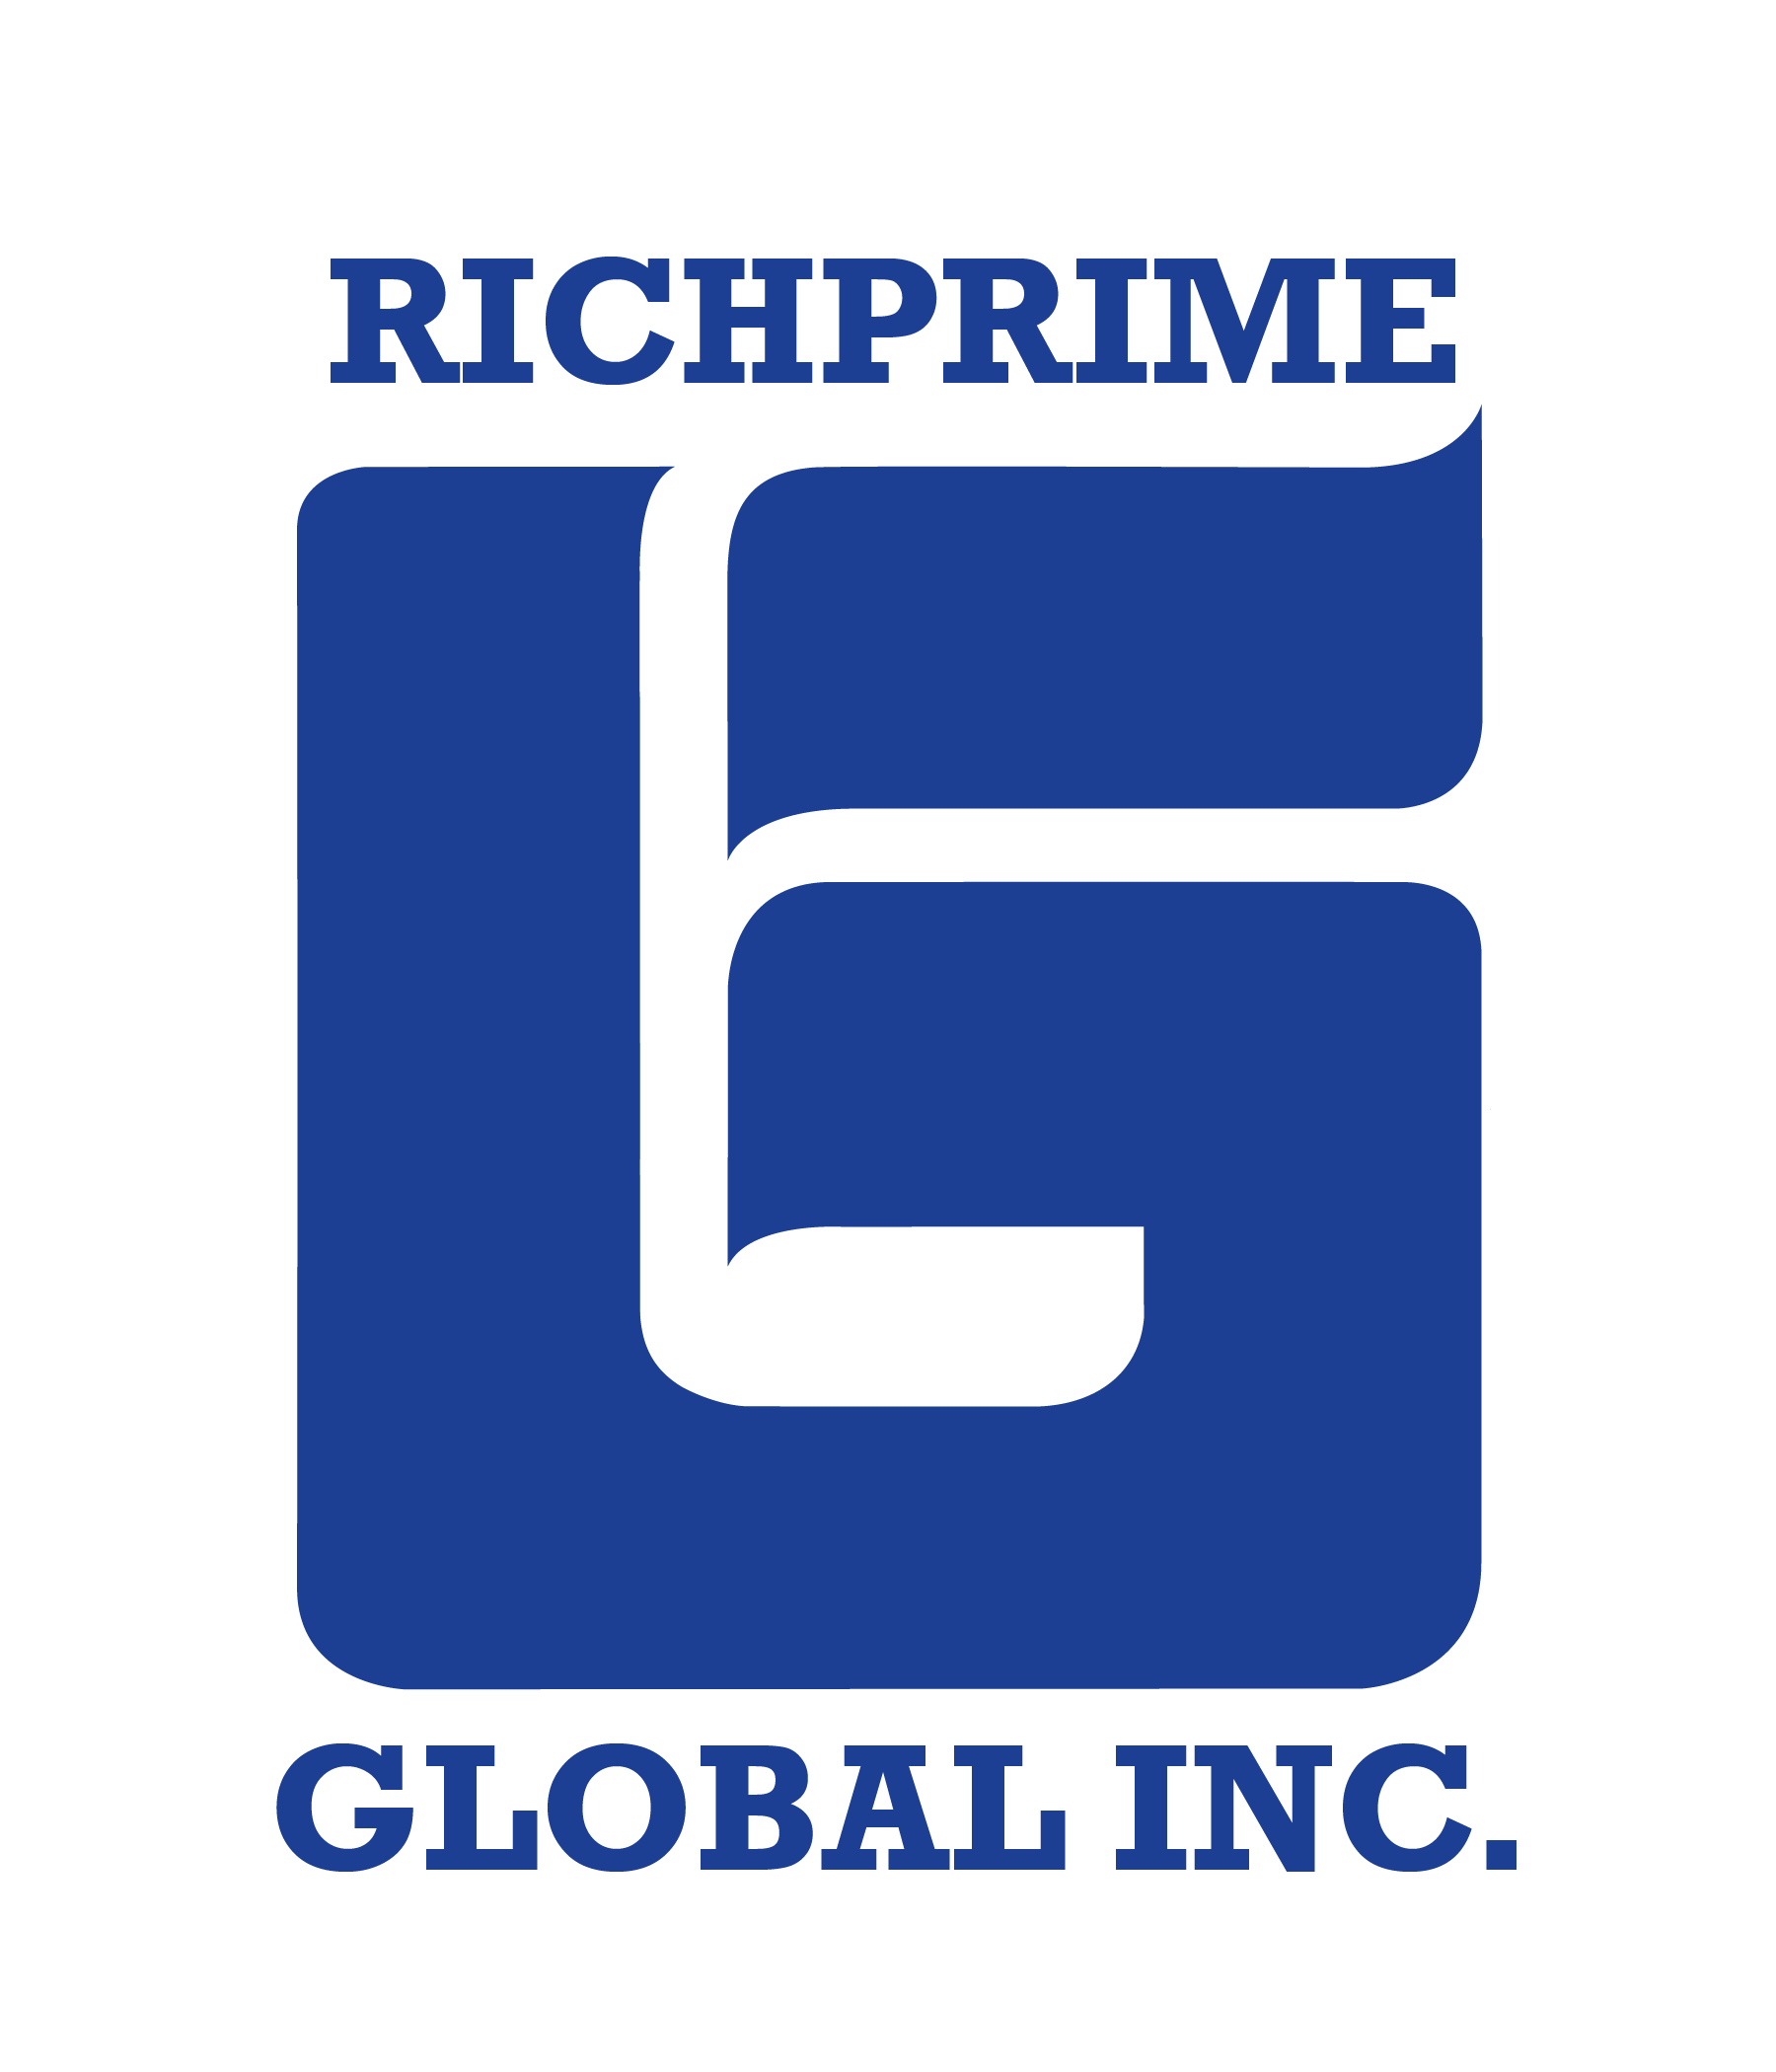 Richprime Global Inc.